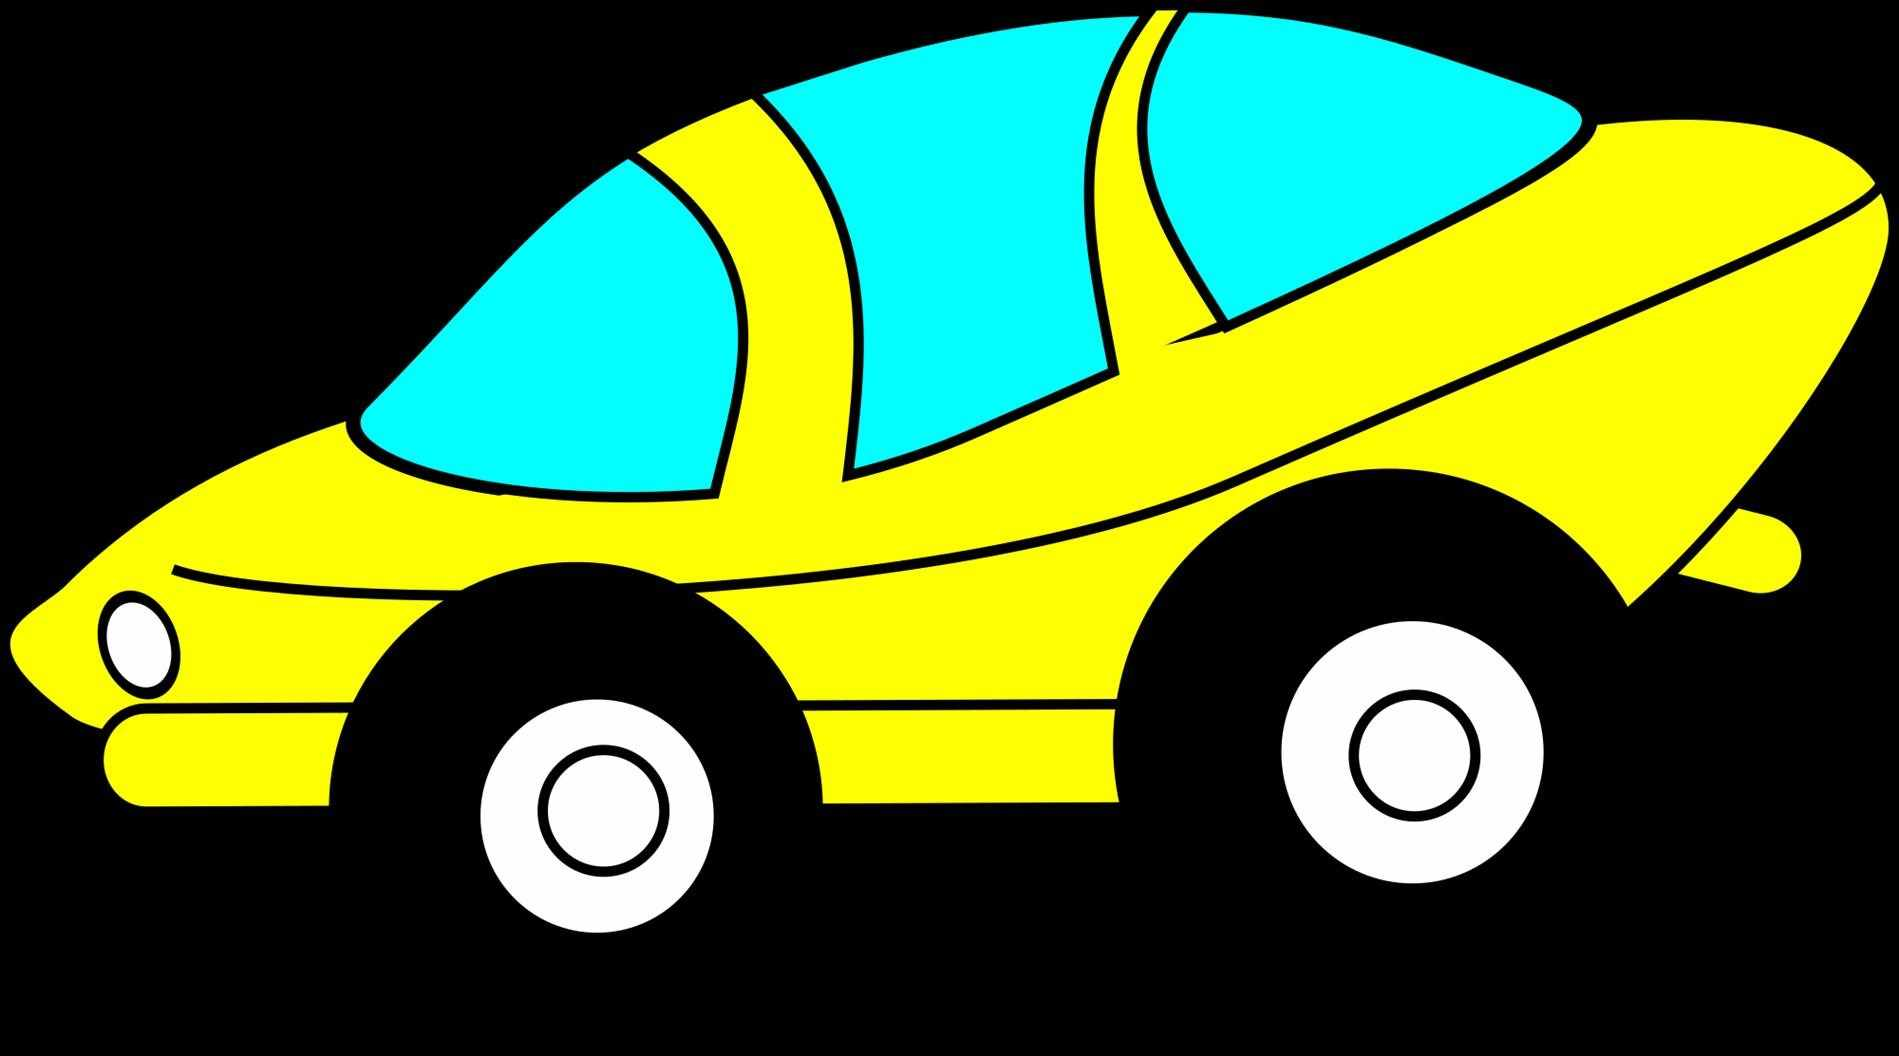 simple-car-clipart-17 Interesting Info About Cartoon Car Engine with Amazing Images Cars Review